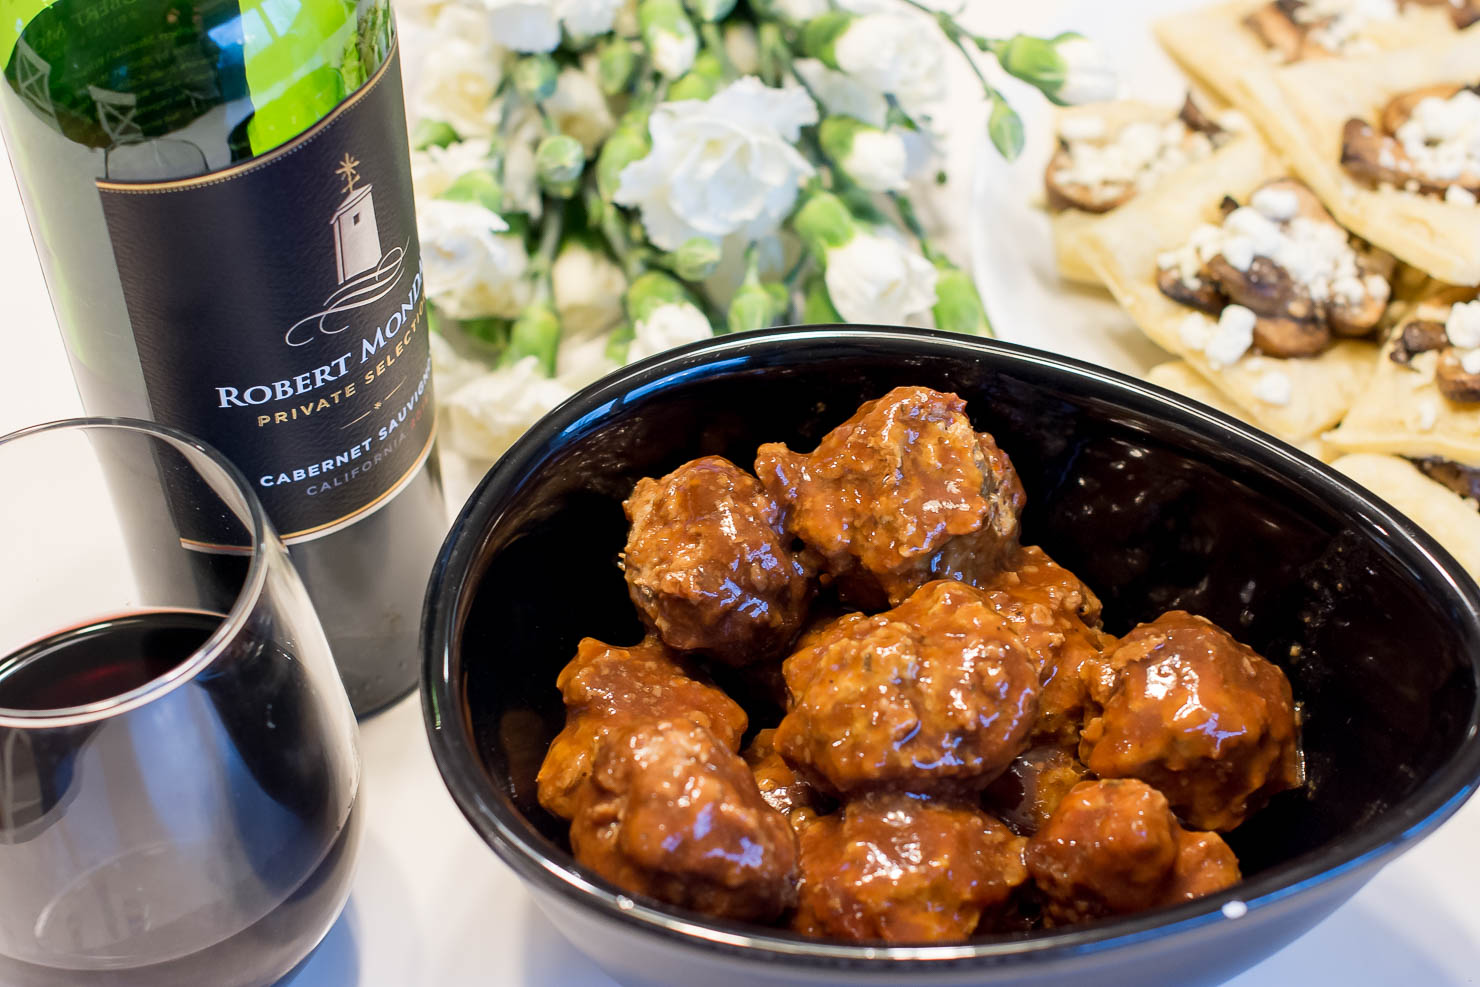 appetizers-to-pair-with-cabernet-sauvignon-Robert-Mondavi-private-label-easy-mushroom-and-goat-cheese-tarts-3-ingredient-turkey-meatballs